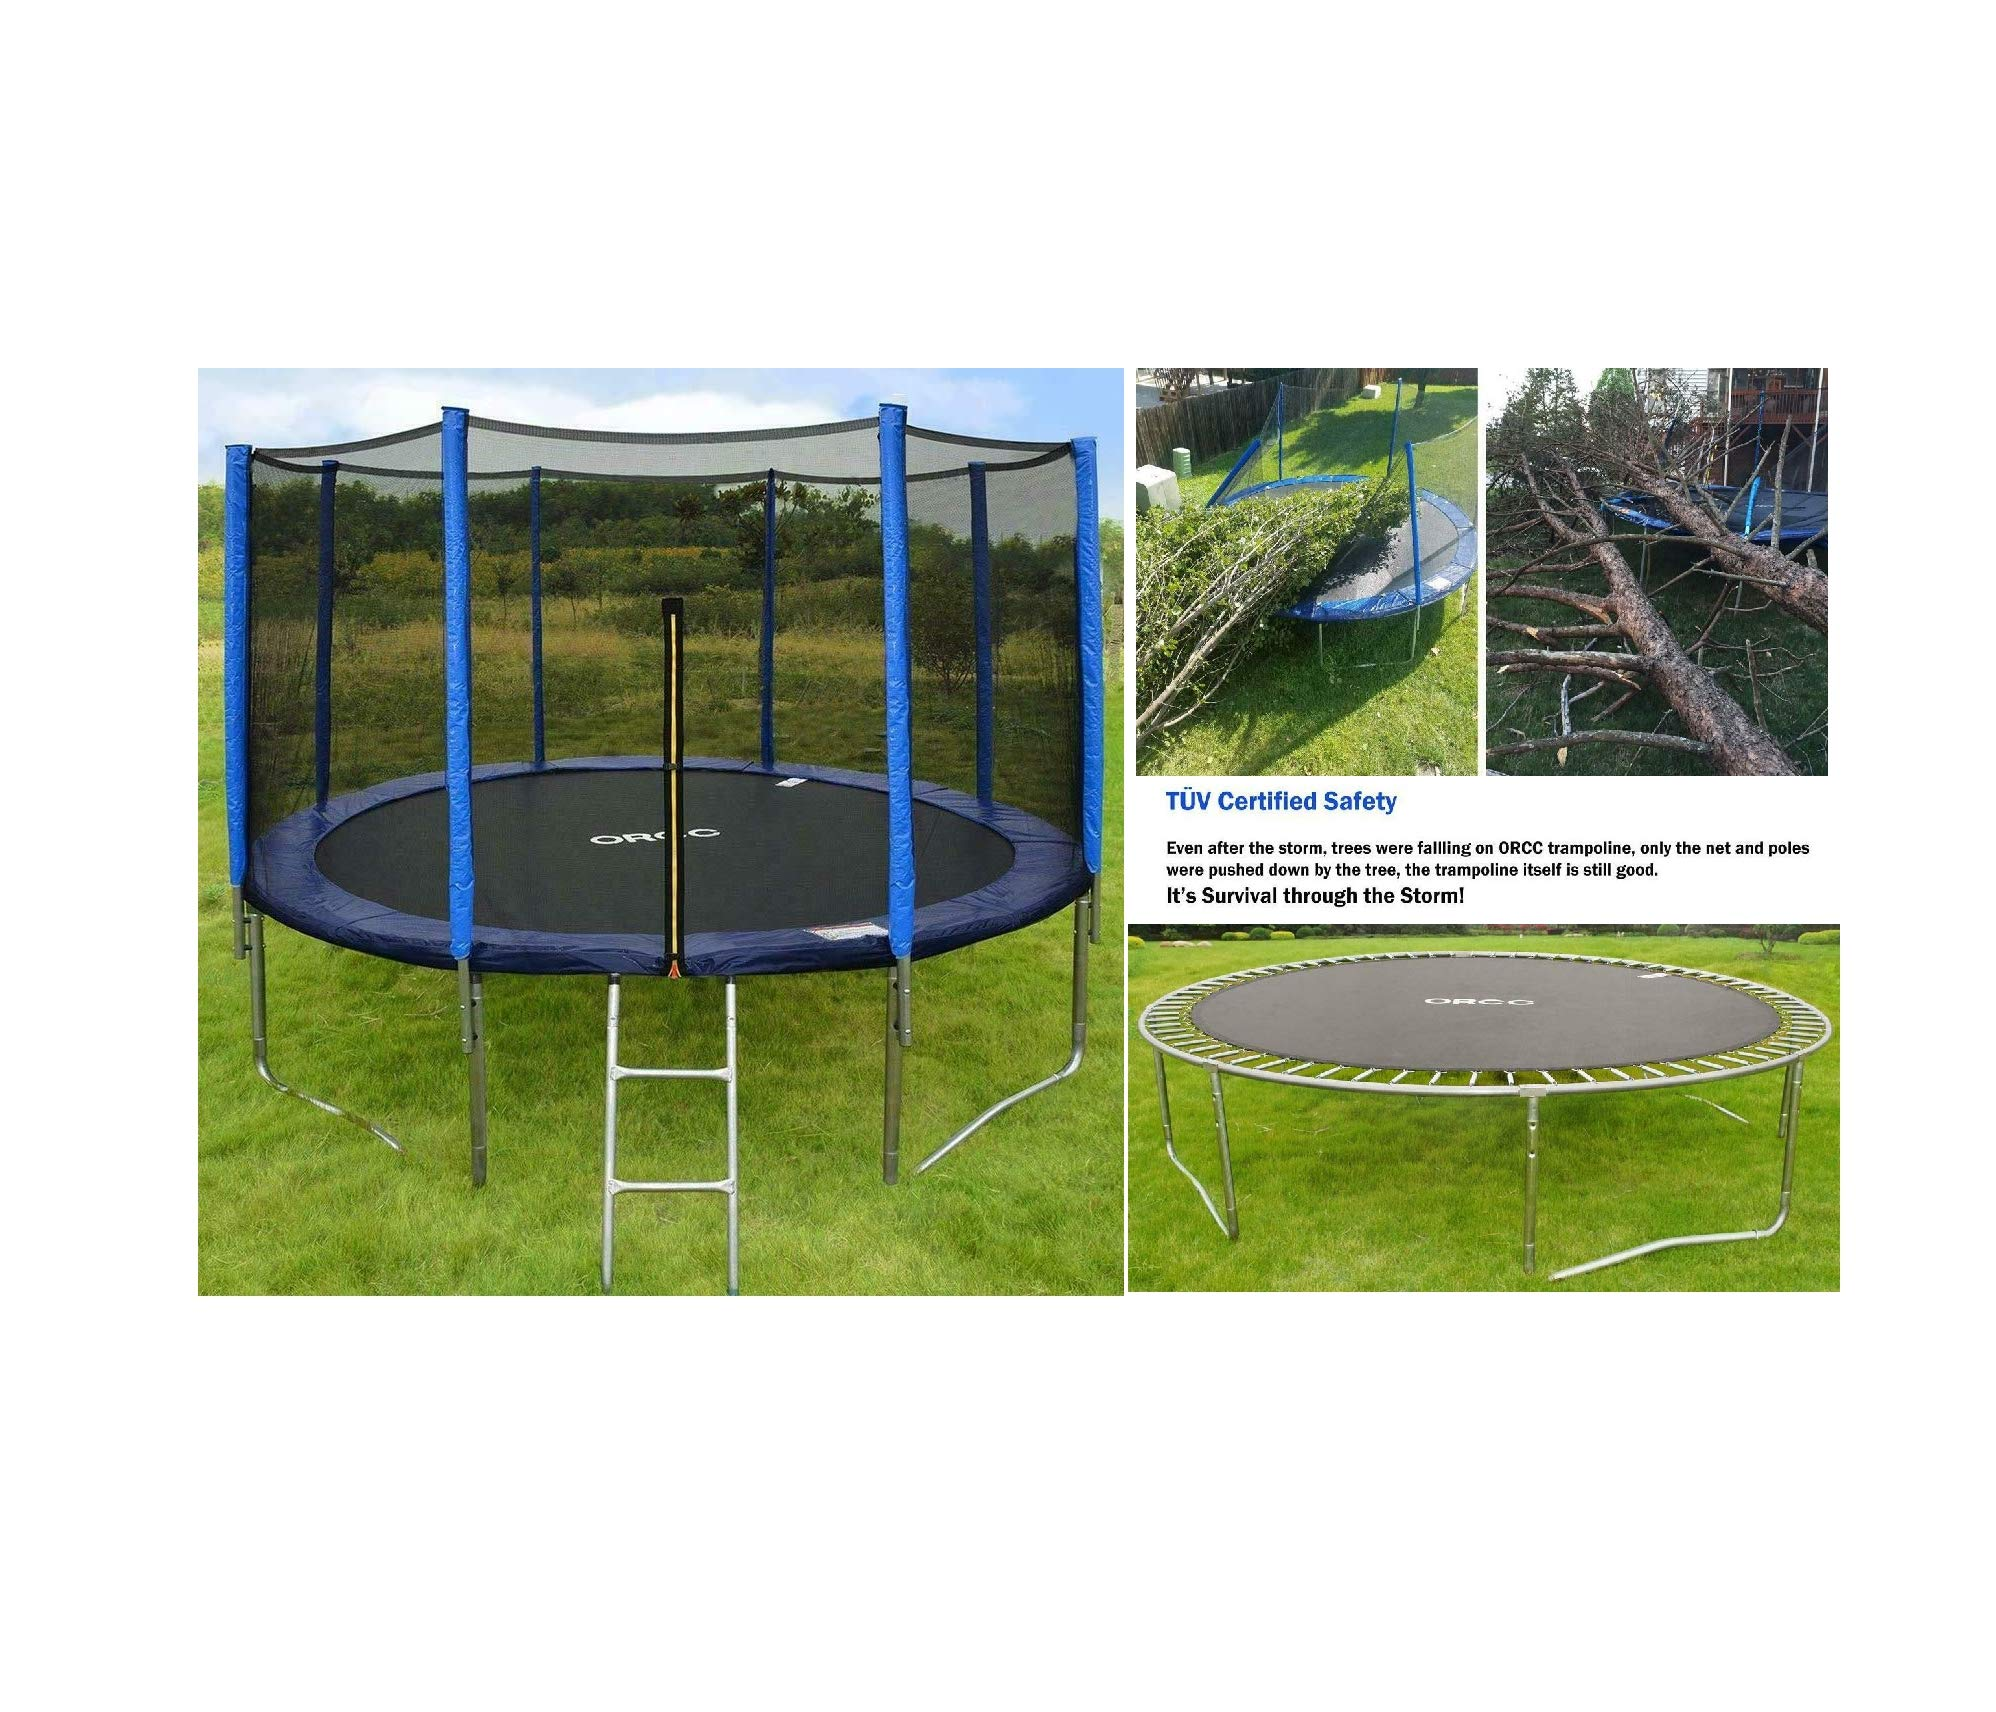 High Reliable Safety 14-8/9FT Trampoline w/Enclosure Net Pad Ladder Lawn Stakes New Quick Arrive